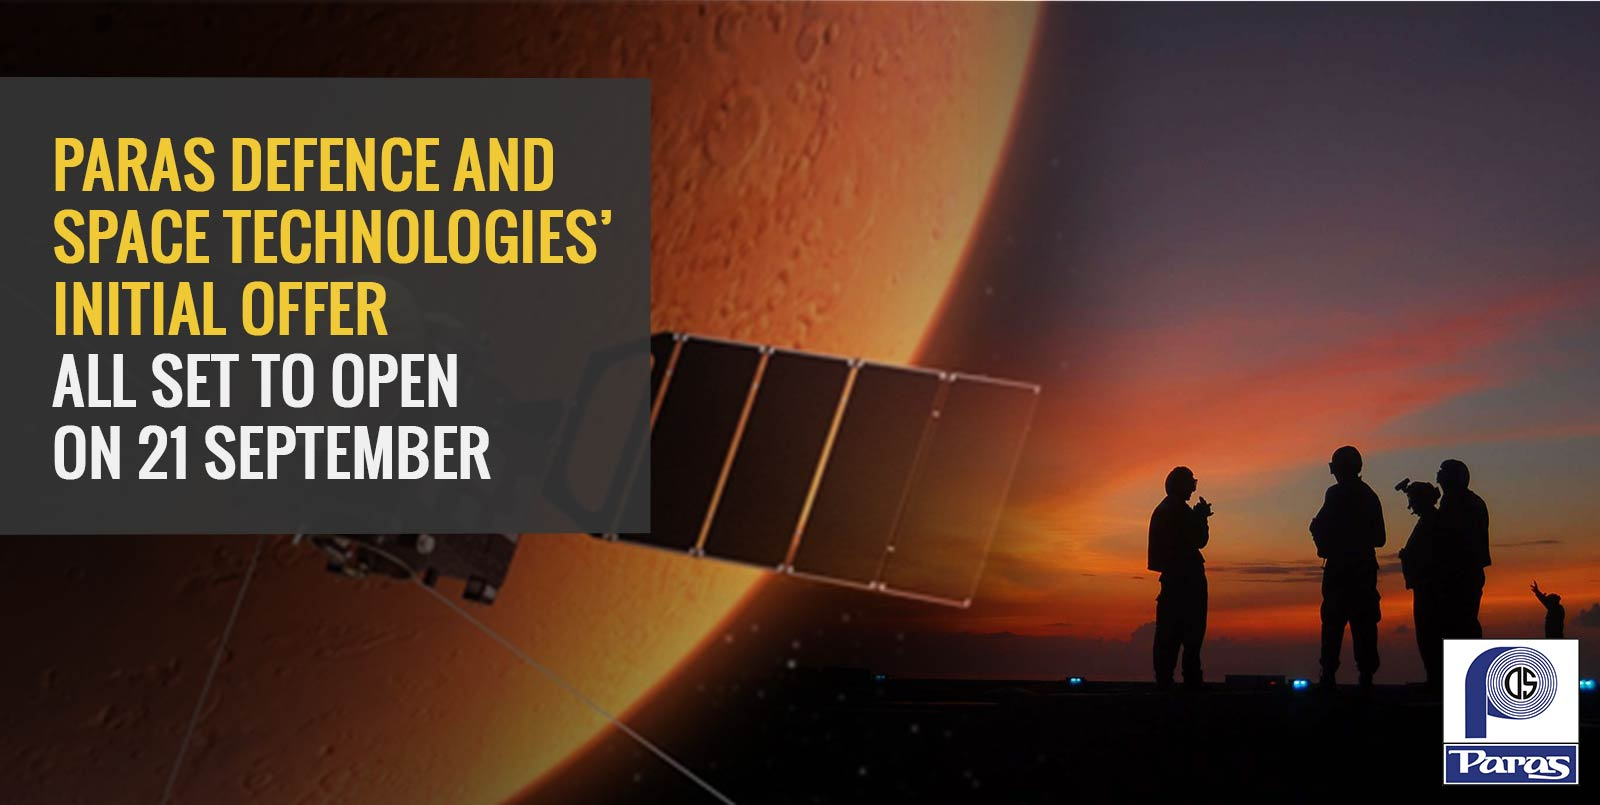 Paras Defence and Space Technologies' Initial Offer All Set to Open on 21 September